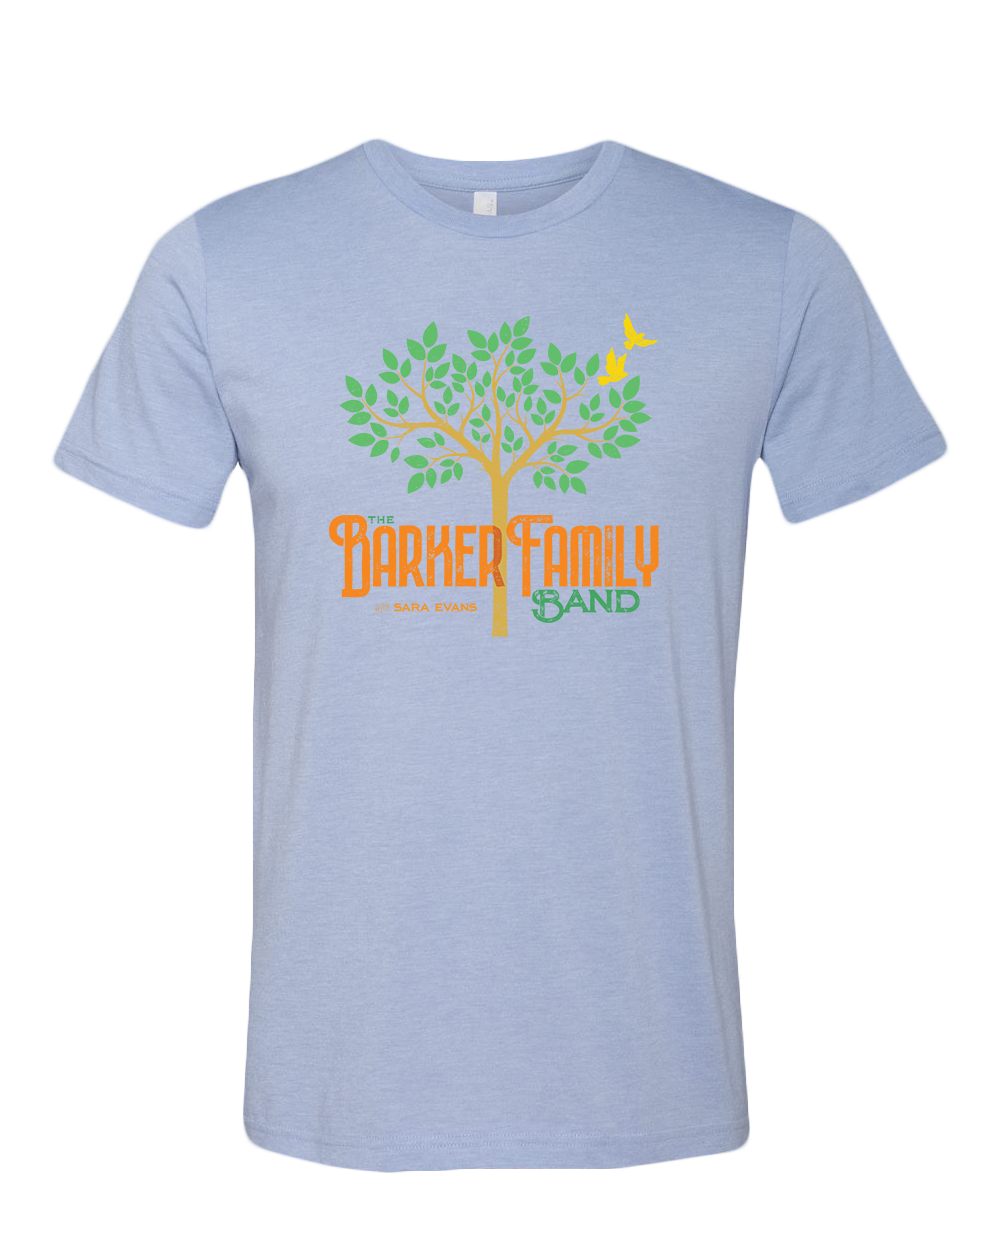 The Barker Family Band Tee